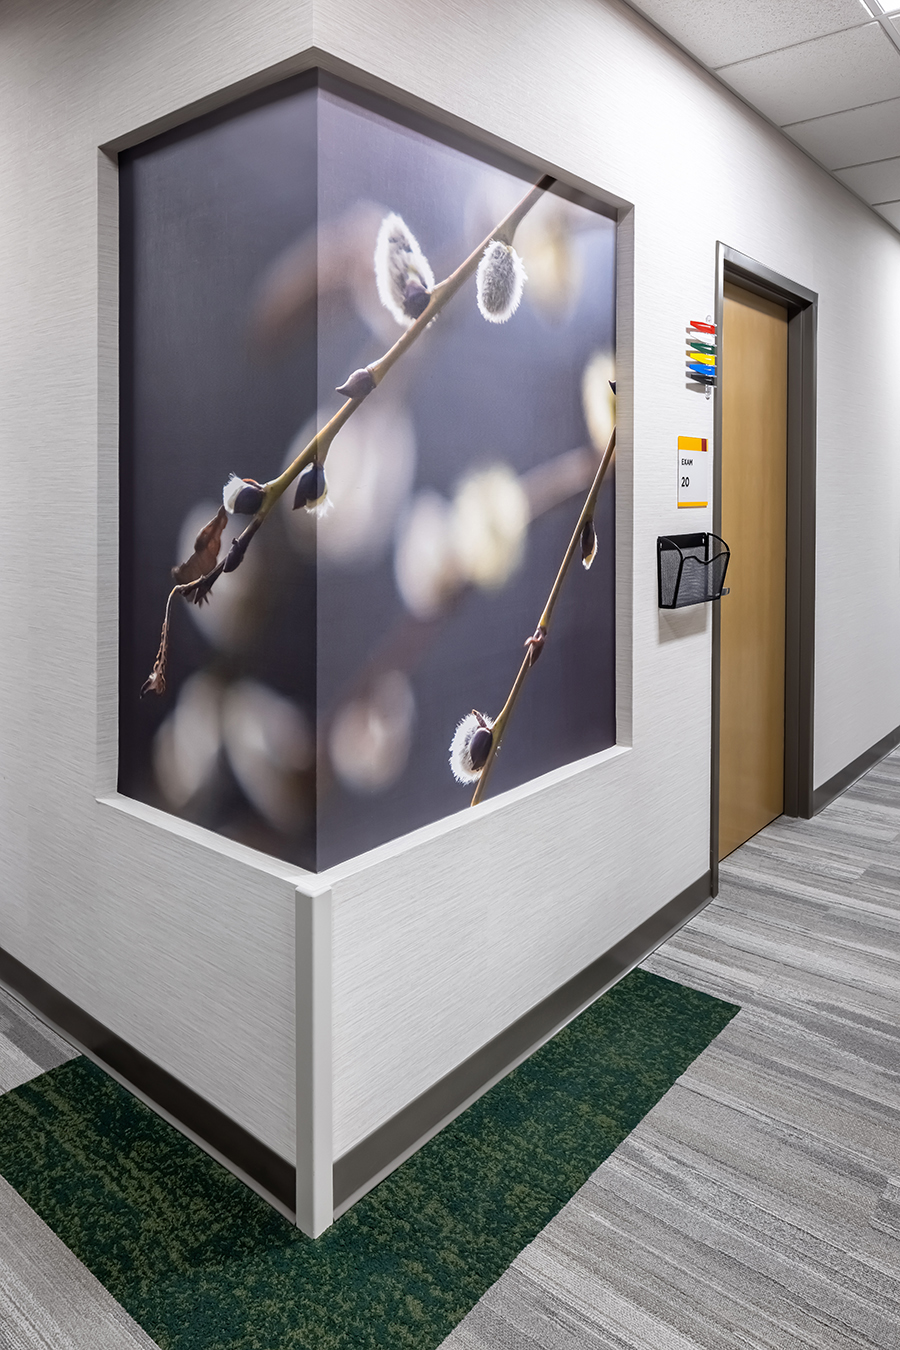 Fairview health services river falls WI Wisconsin BDH Koroseal large scale wallcovering graphic mural tree branch branches pussy willow close up hall hallway corridor